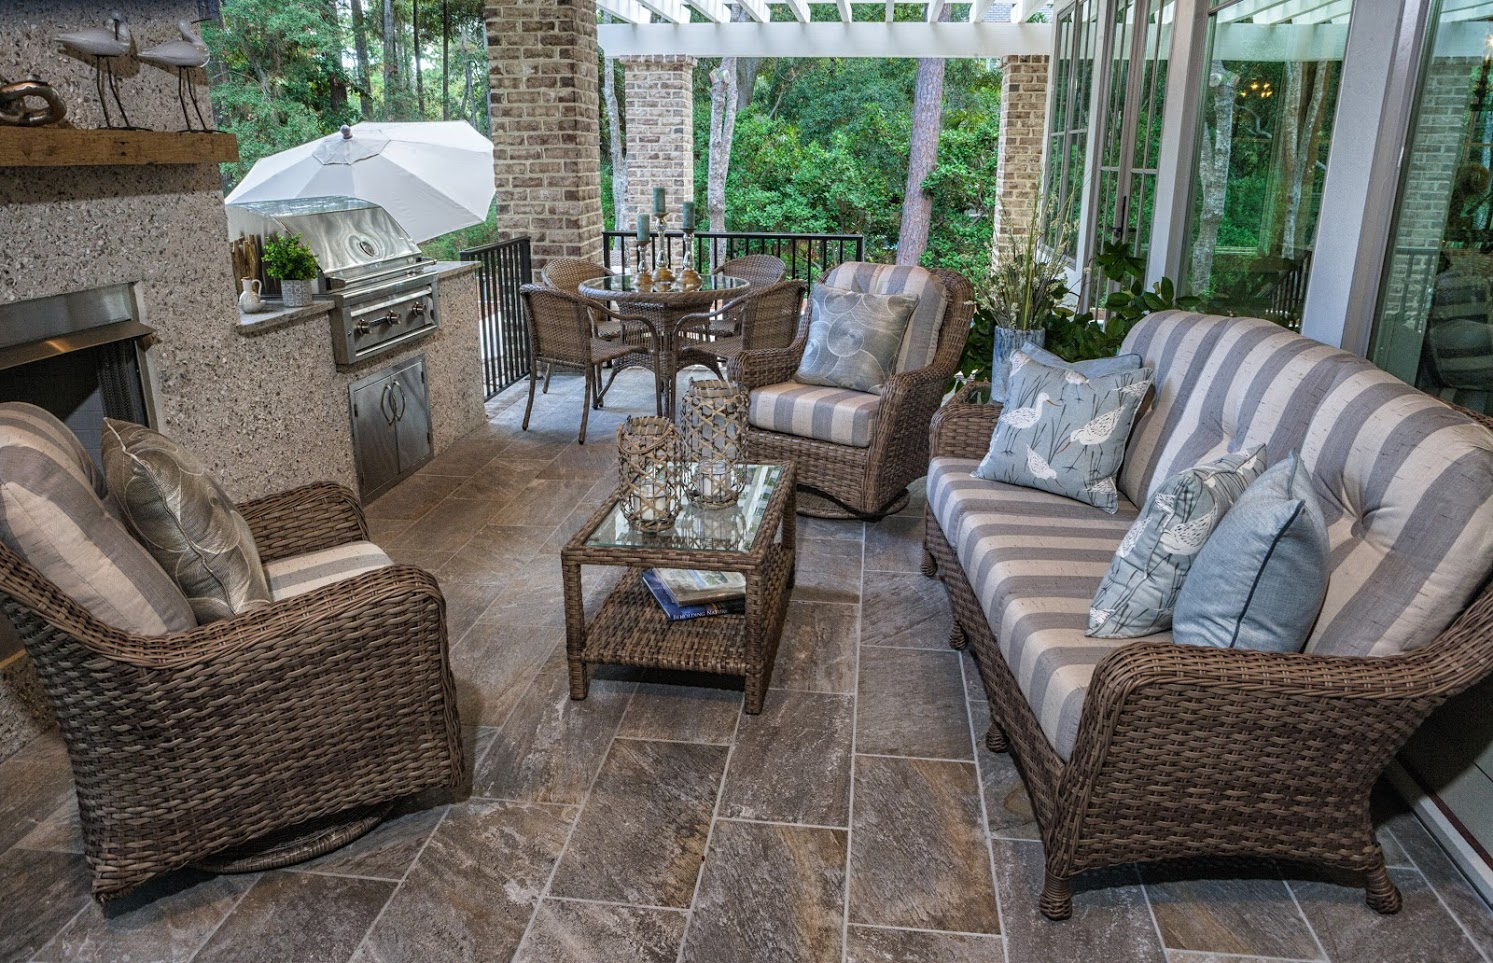 ... Patio Furniture Myrtle Beach Sc U2022 Patio Ideas Rh  Mikecounsilplumbing Com North Myrtle Beach Patio Furniture Myrtle Beach  Outdoor Furniture Stores